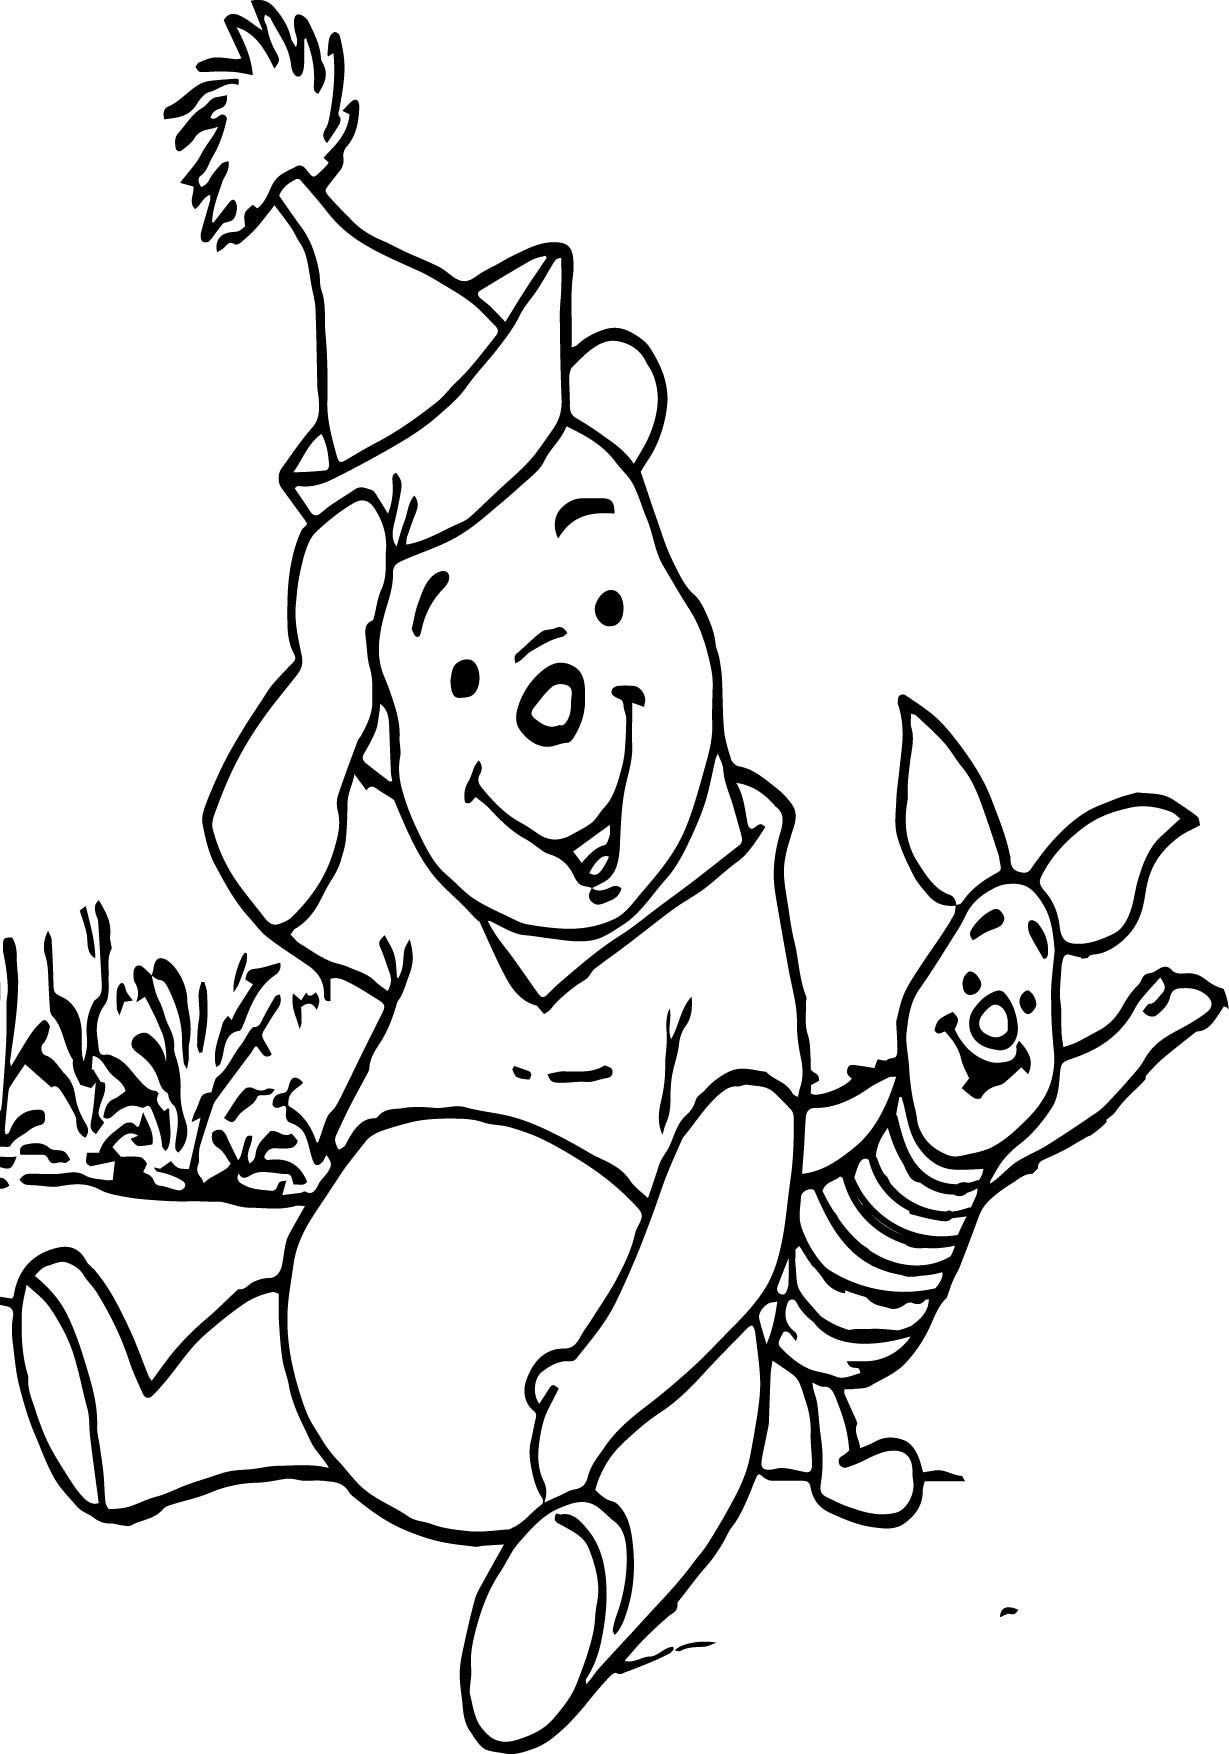 Awesome Winnie The Pooh Piglet Say Hello Coloring Page